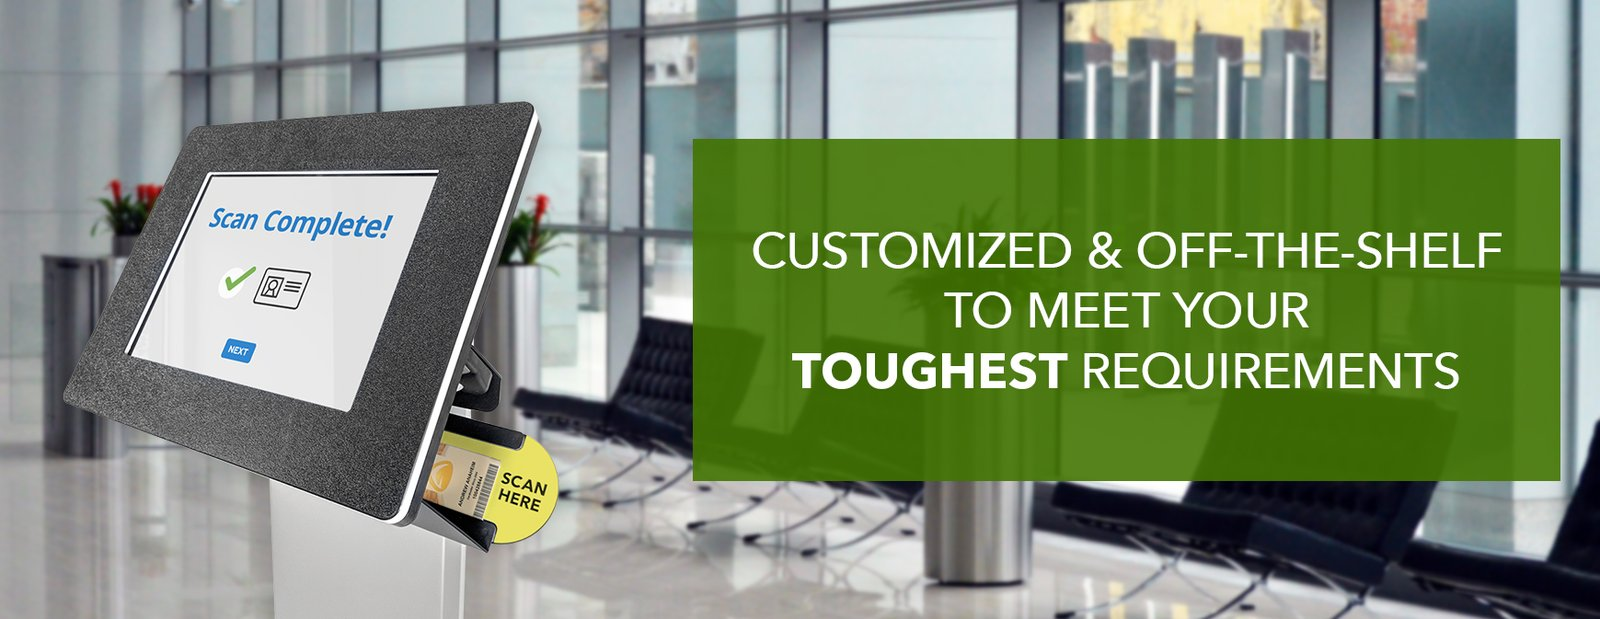 Customized & off-the-shelf to meet your toughest requirements.